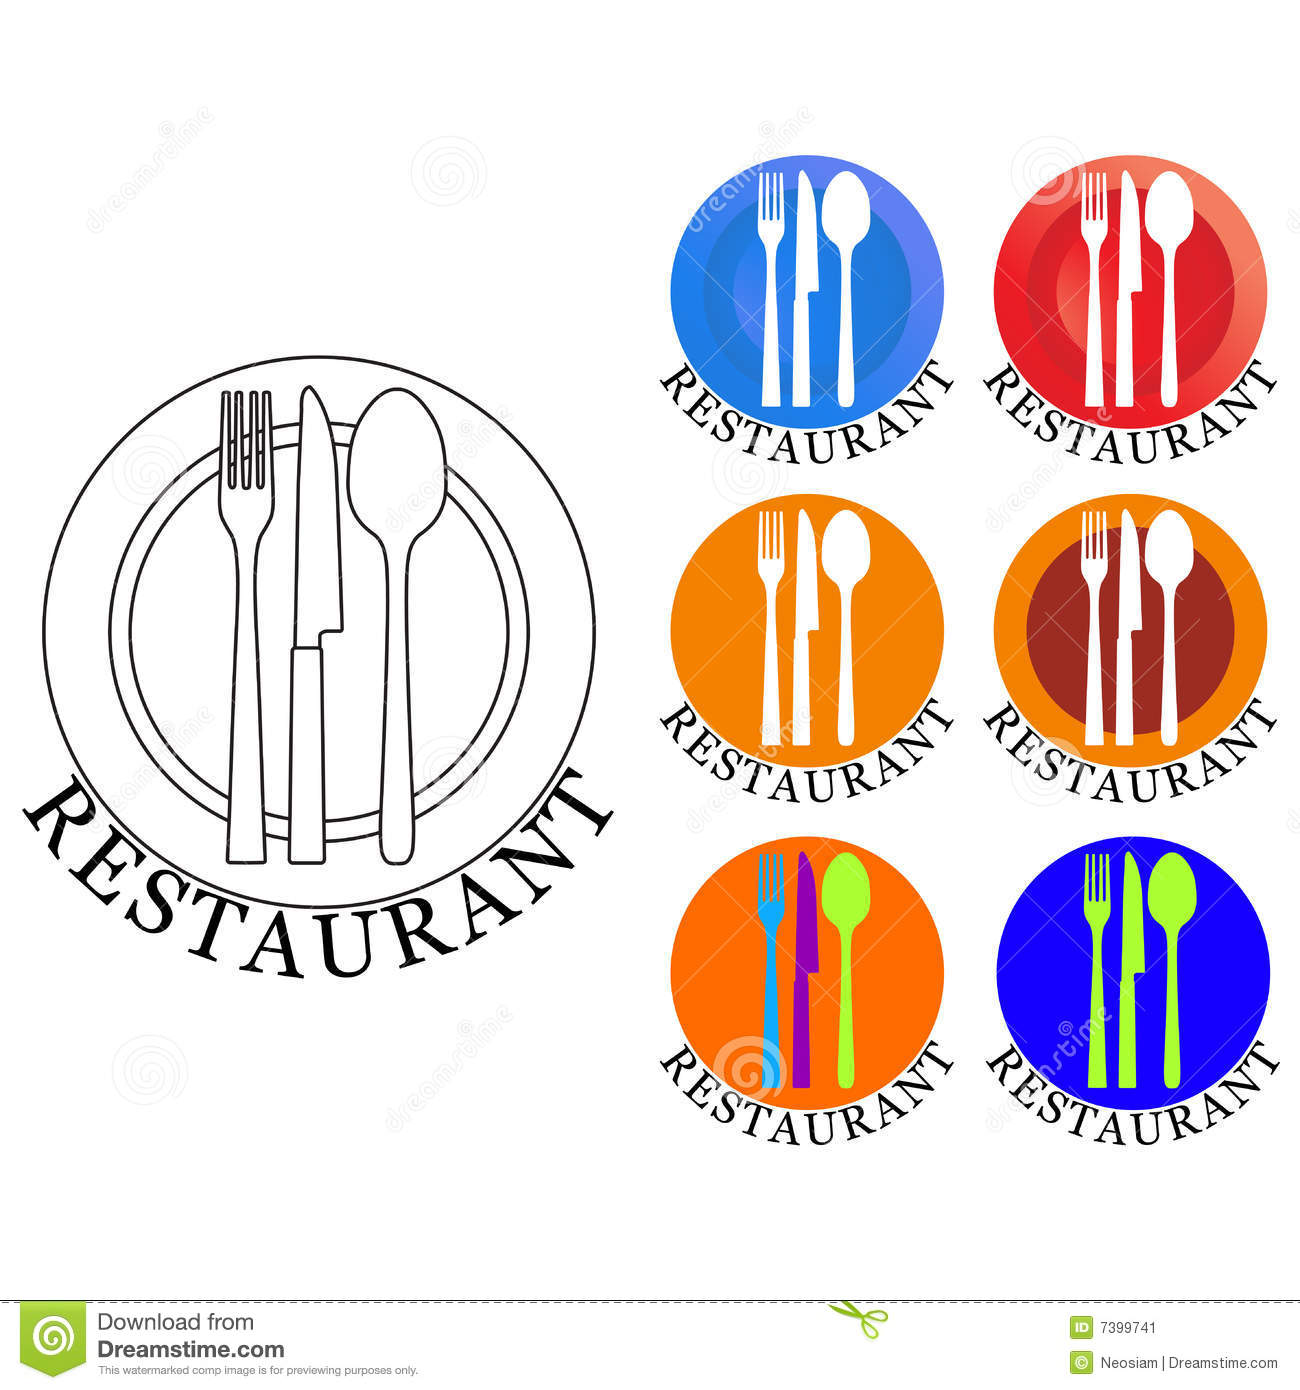 Restaurant Stock Photos and Images. 368,454 Restaurant